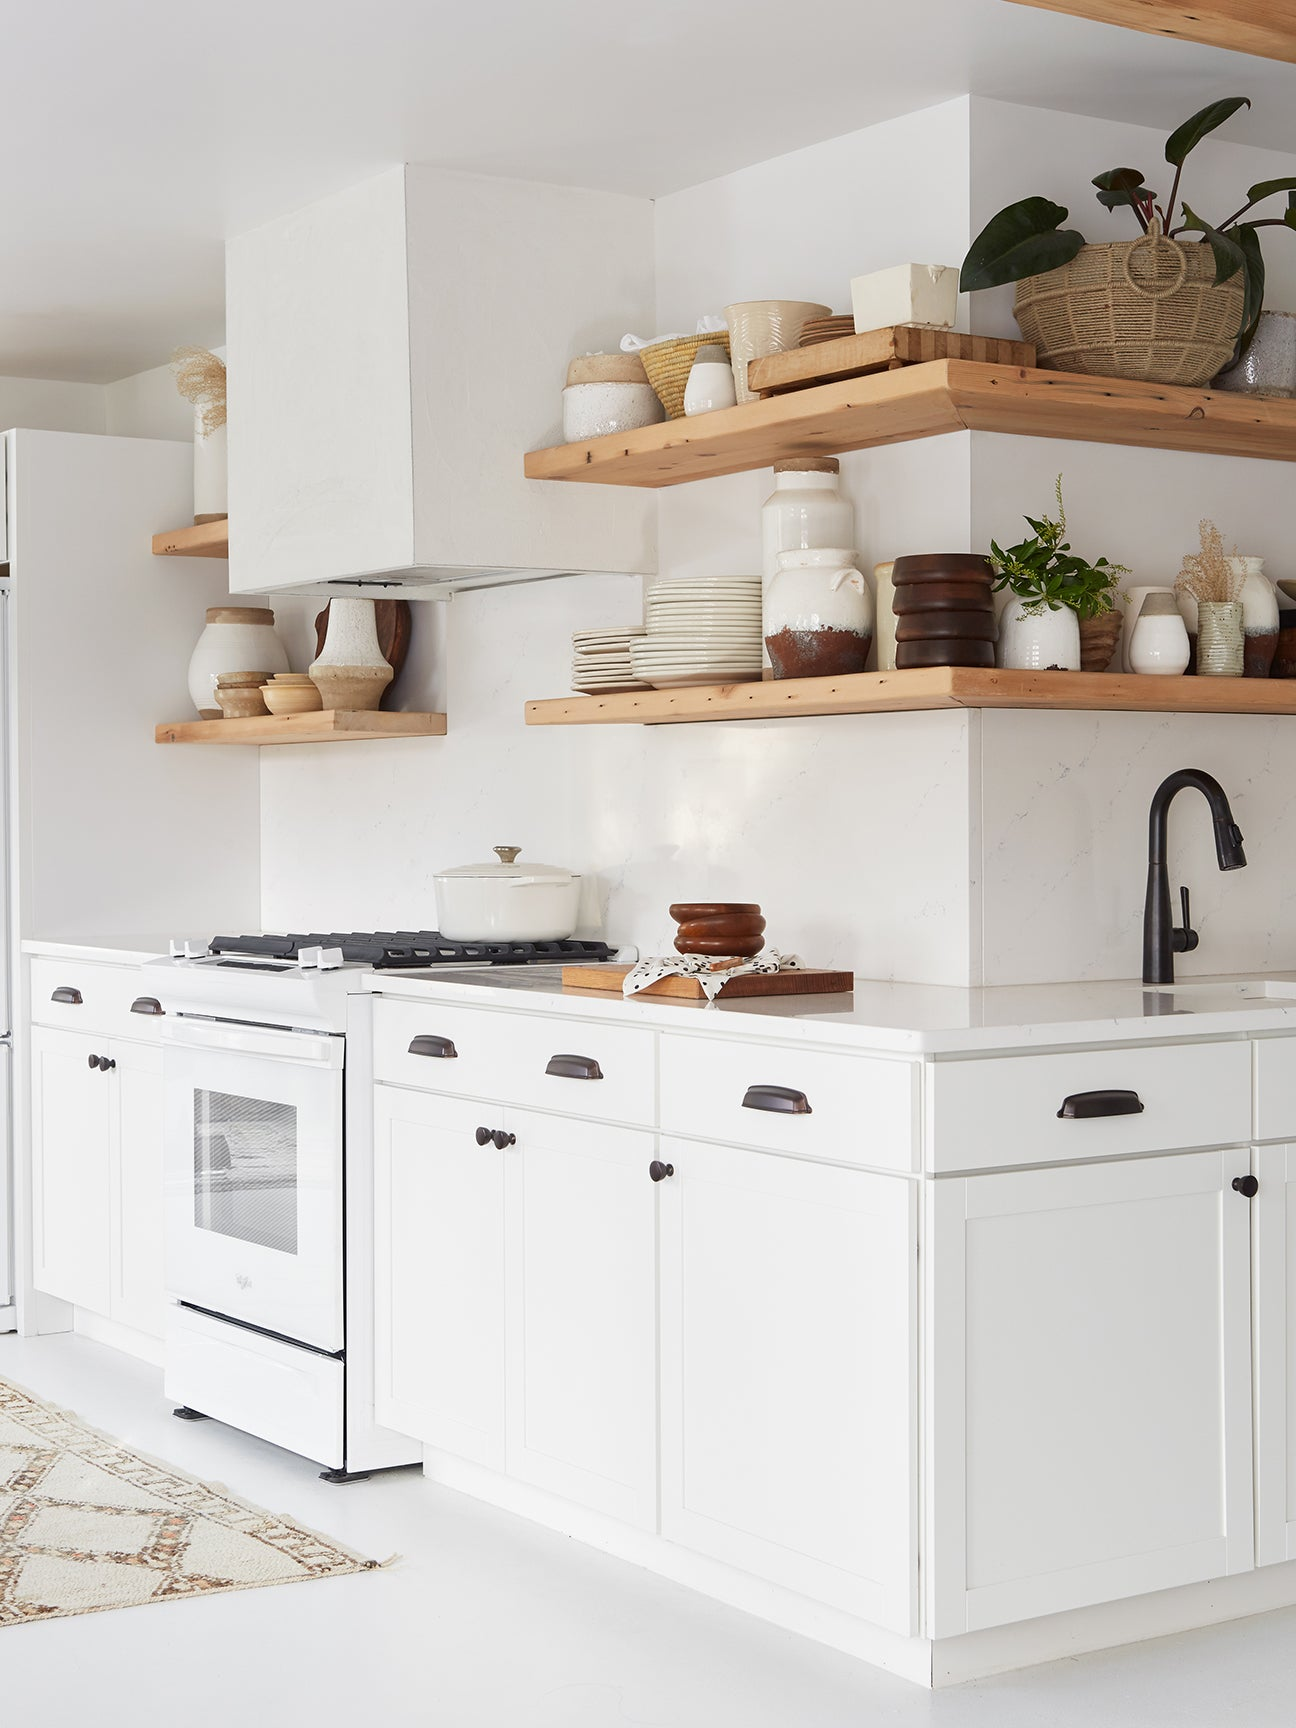 We Absolutely Believe in Your Galley Kitchen